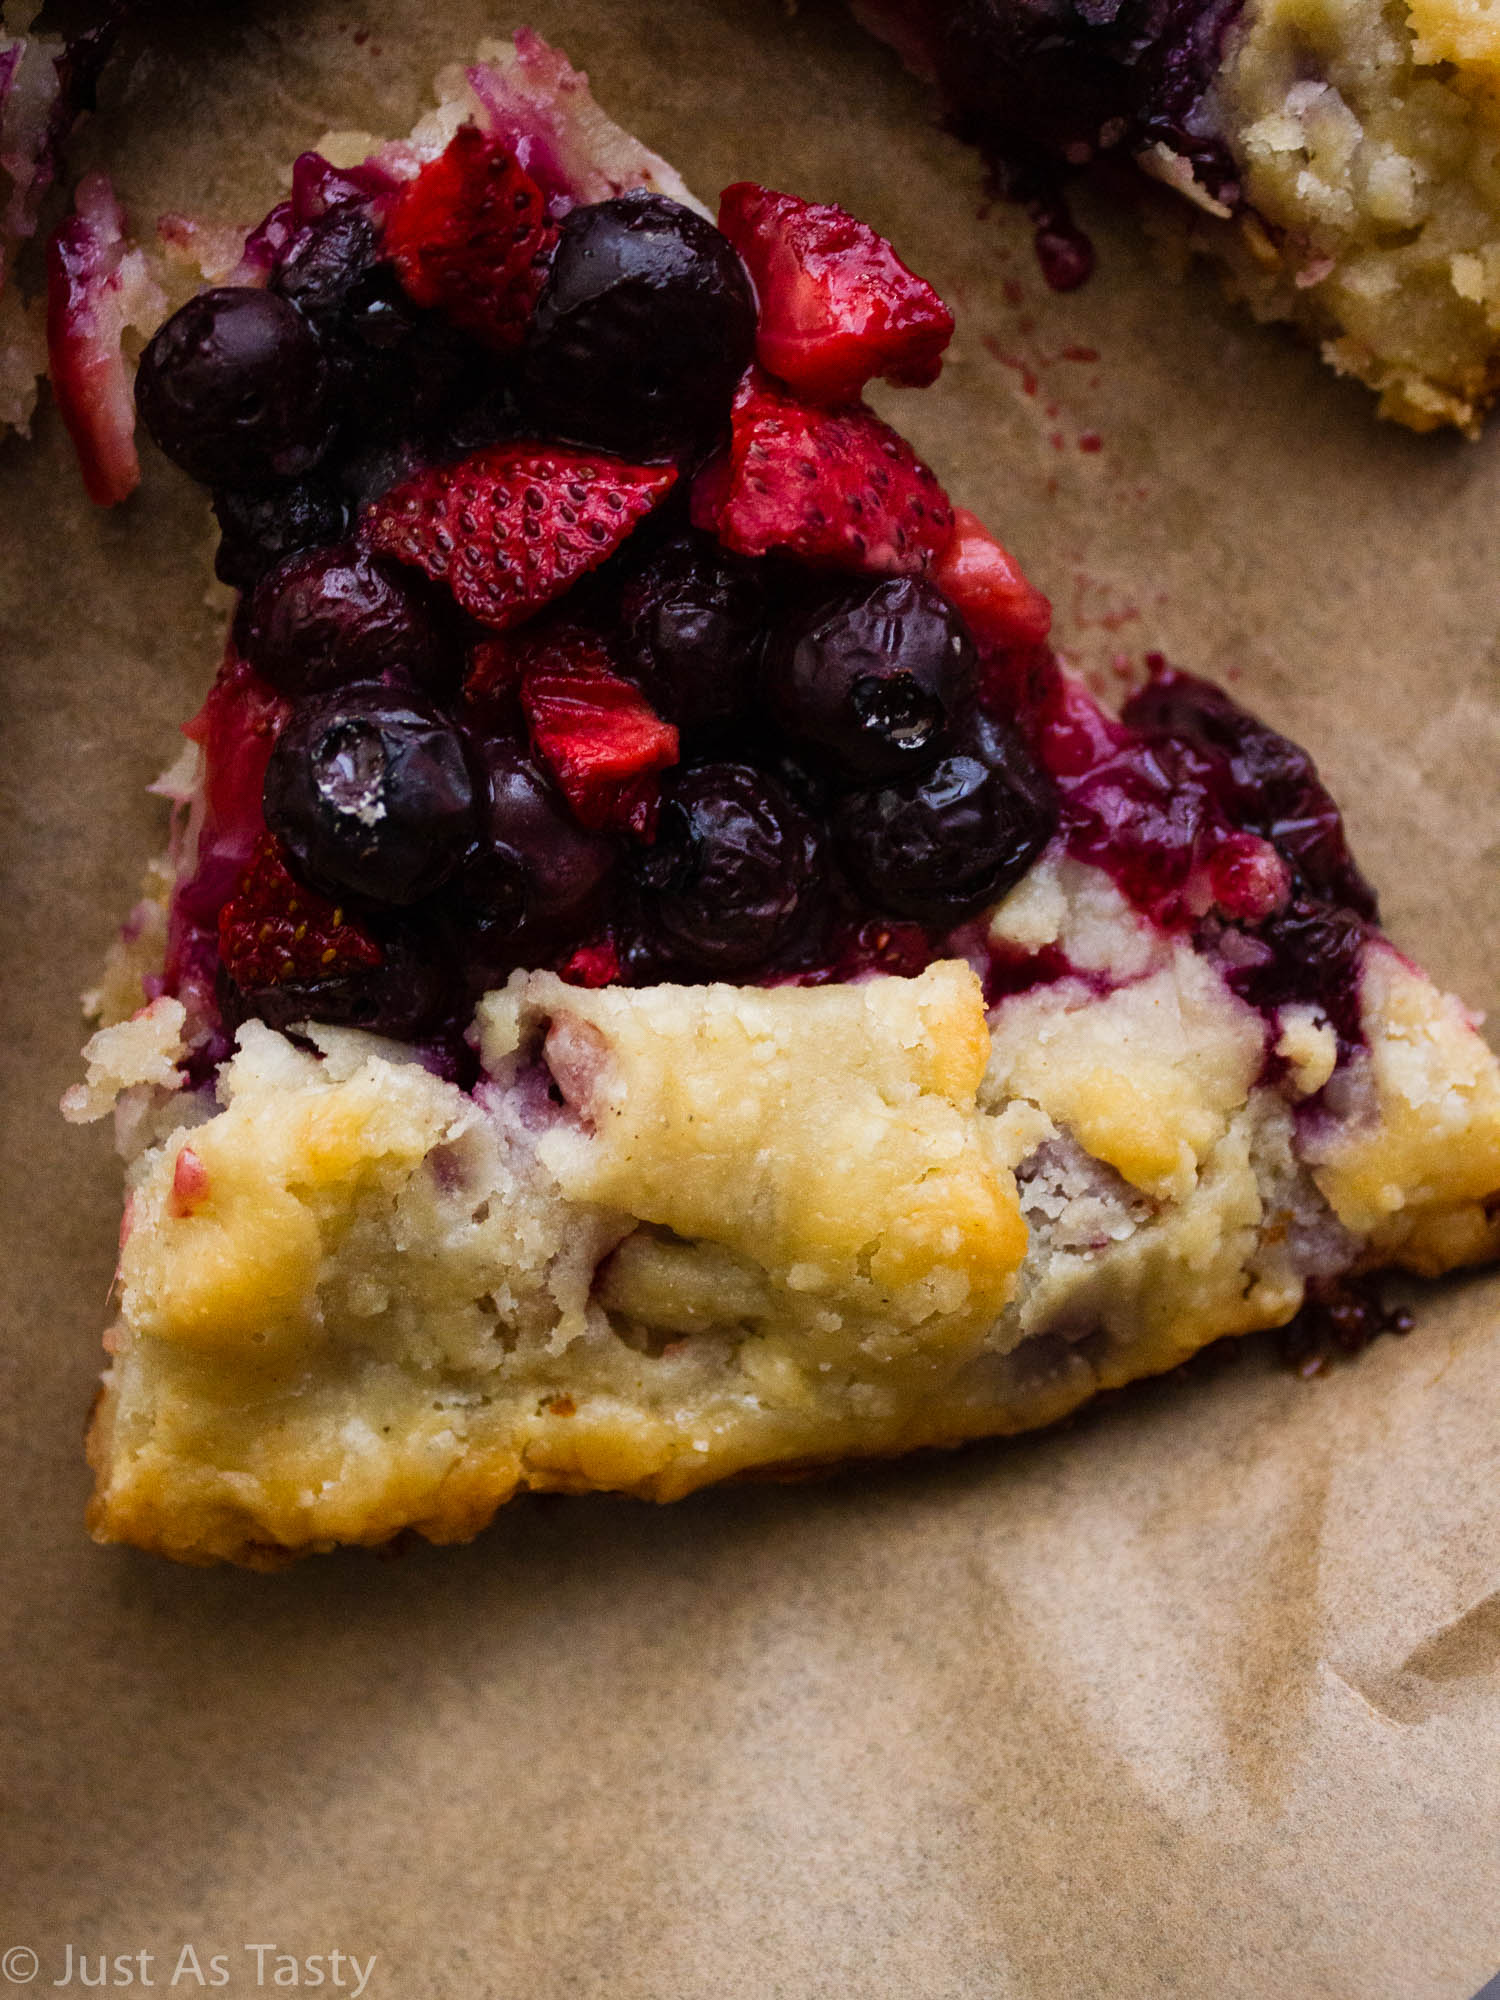 Close-up of a slice of galette filled with berries.